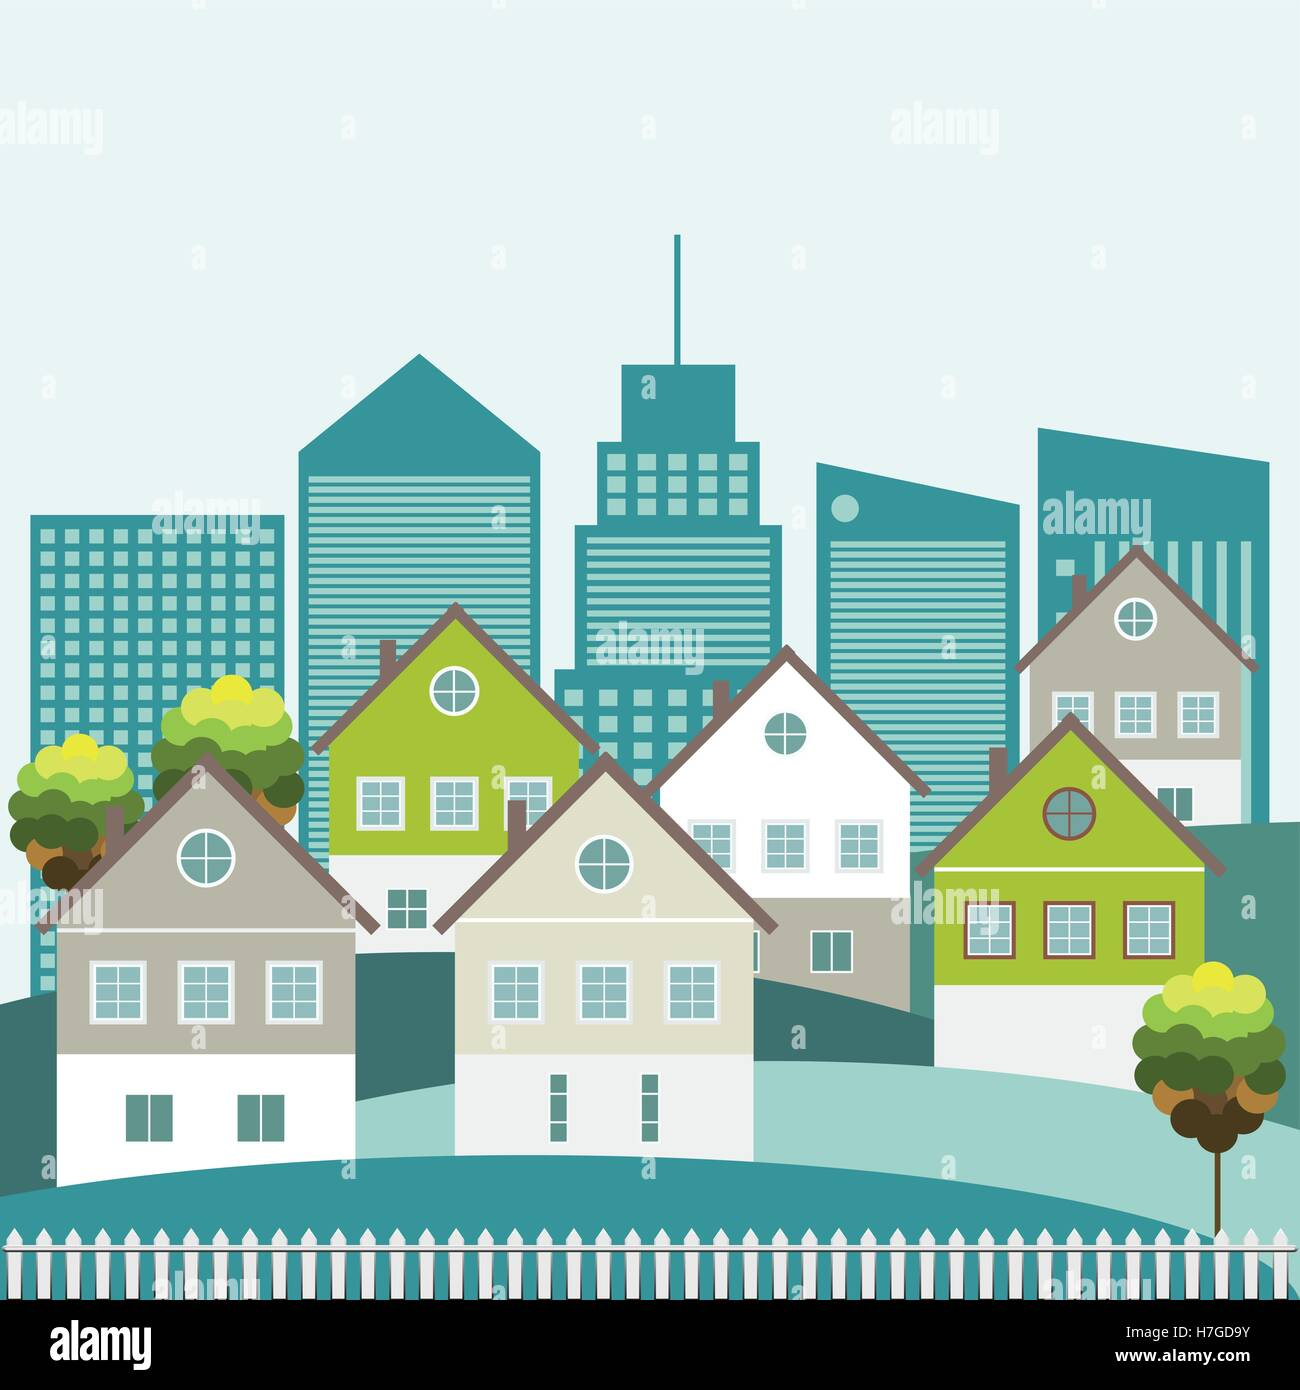 Colorful Houses For Sale / Rent. Real Estate. Energy Efficiency, Think Green Concept Stock Vector